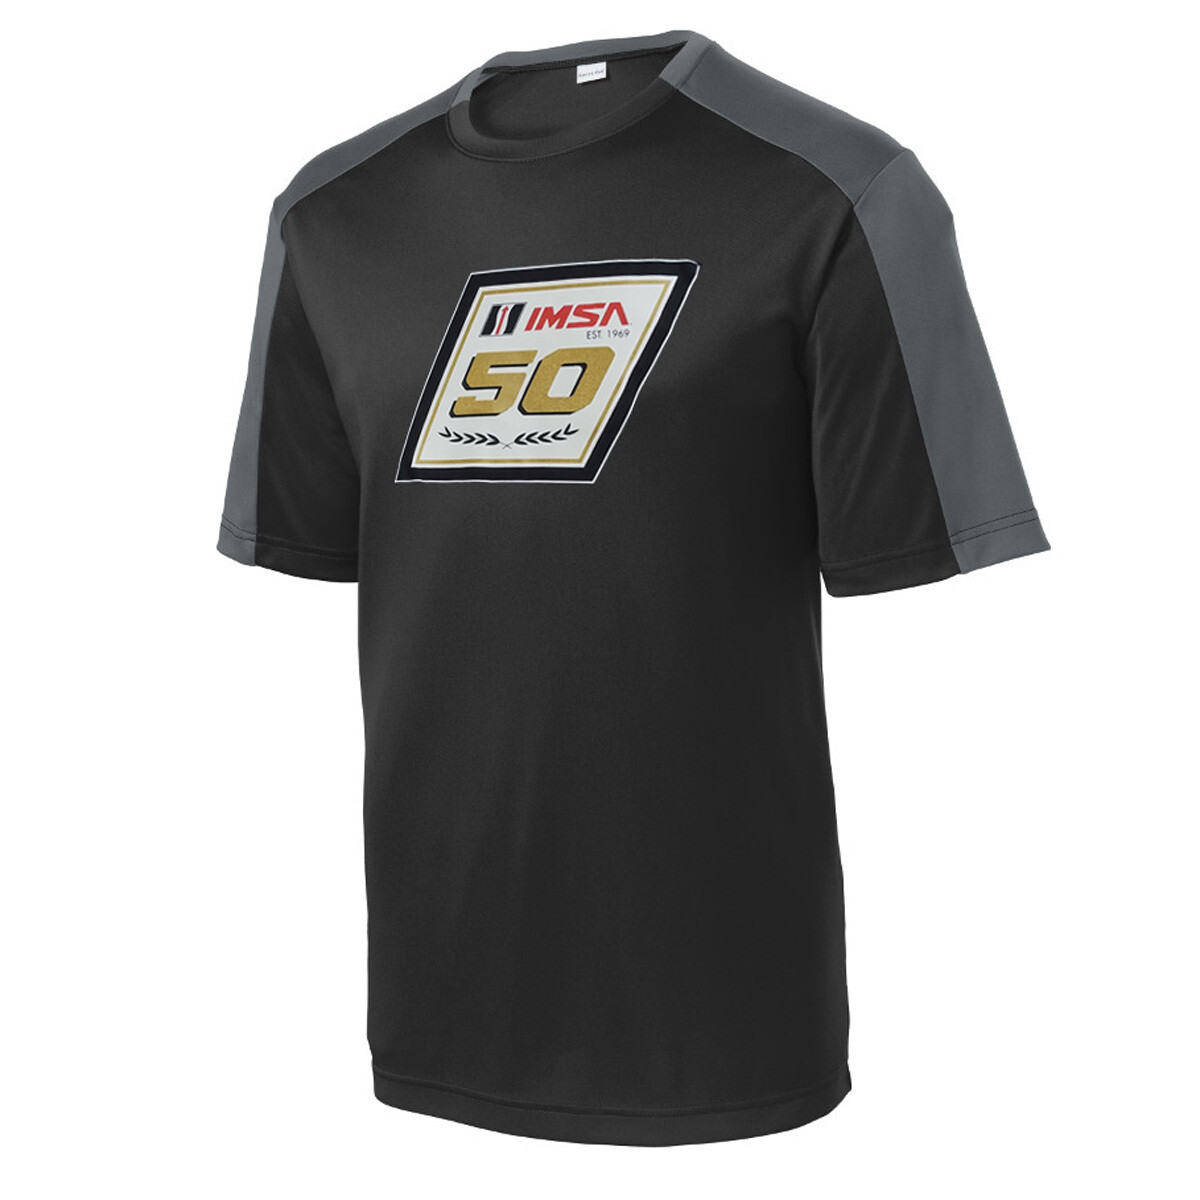 IMSA 50th Anniversary Metallic Logo Performance Tee - Black/Pewter Grey